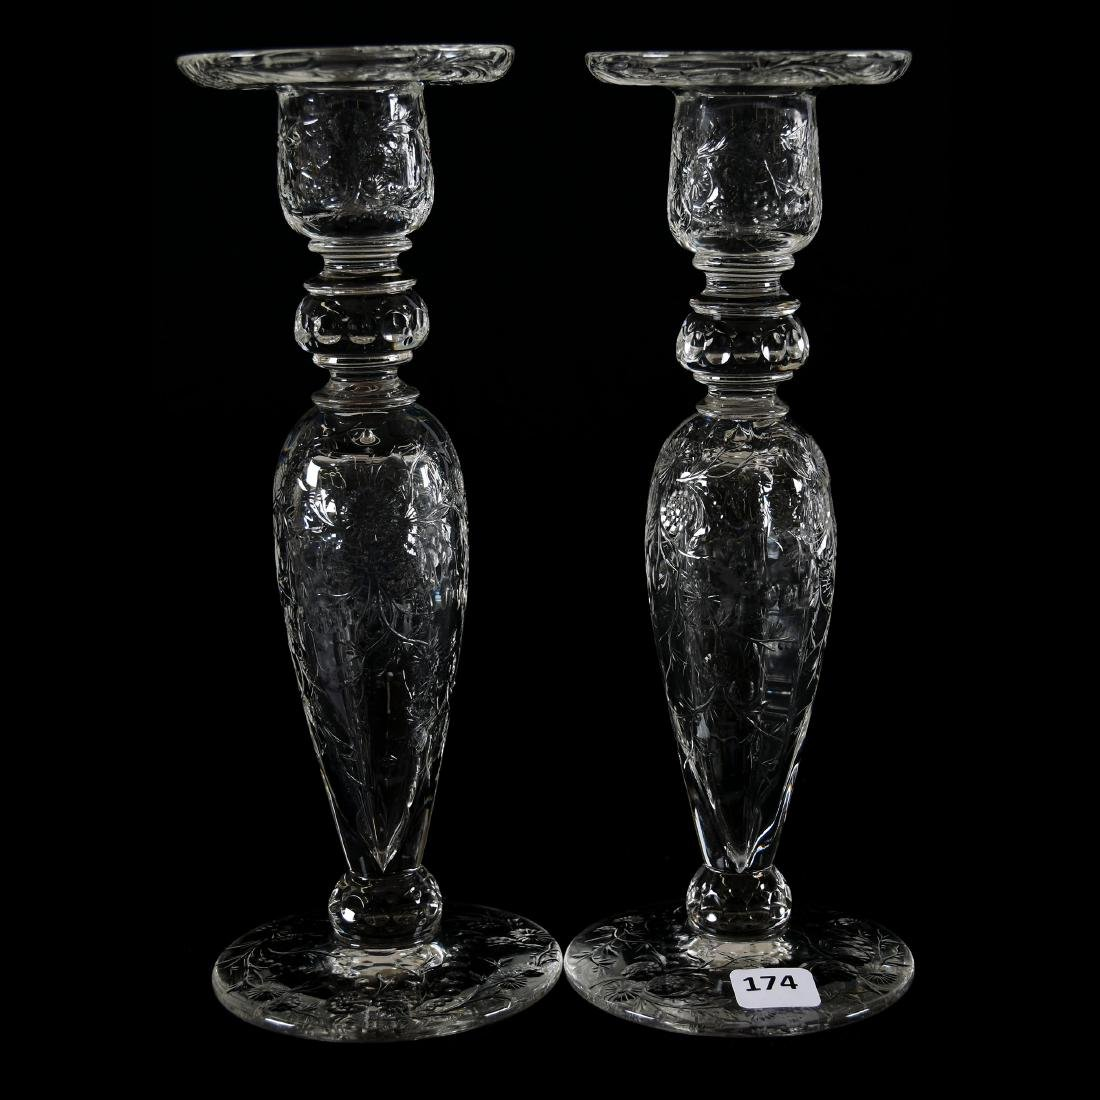 Pair Candlesticks, Rock Crystal, Engraved Floral